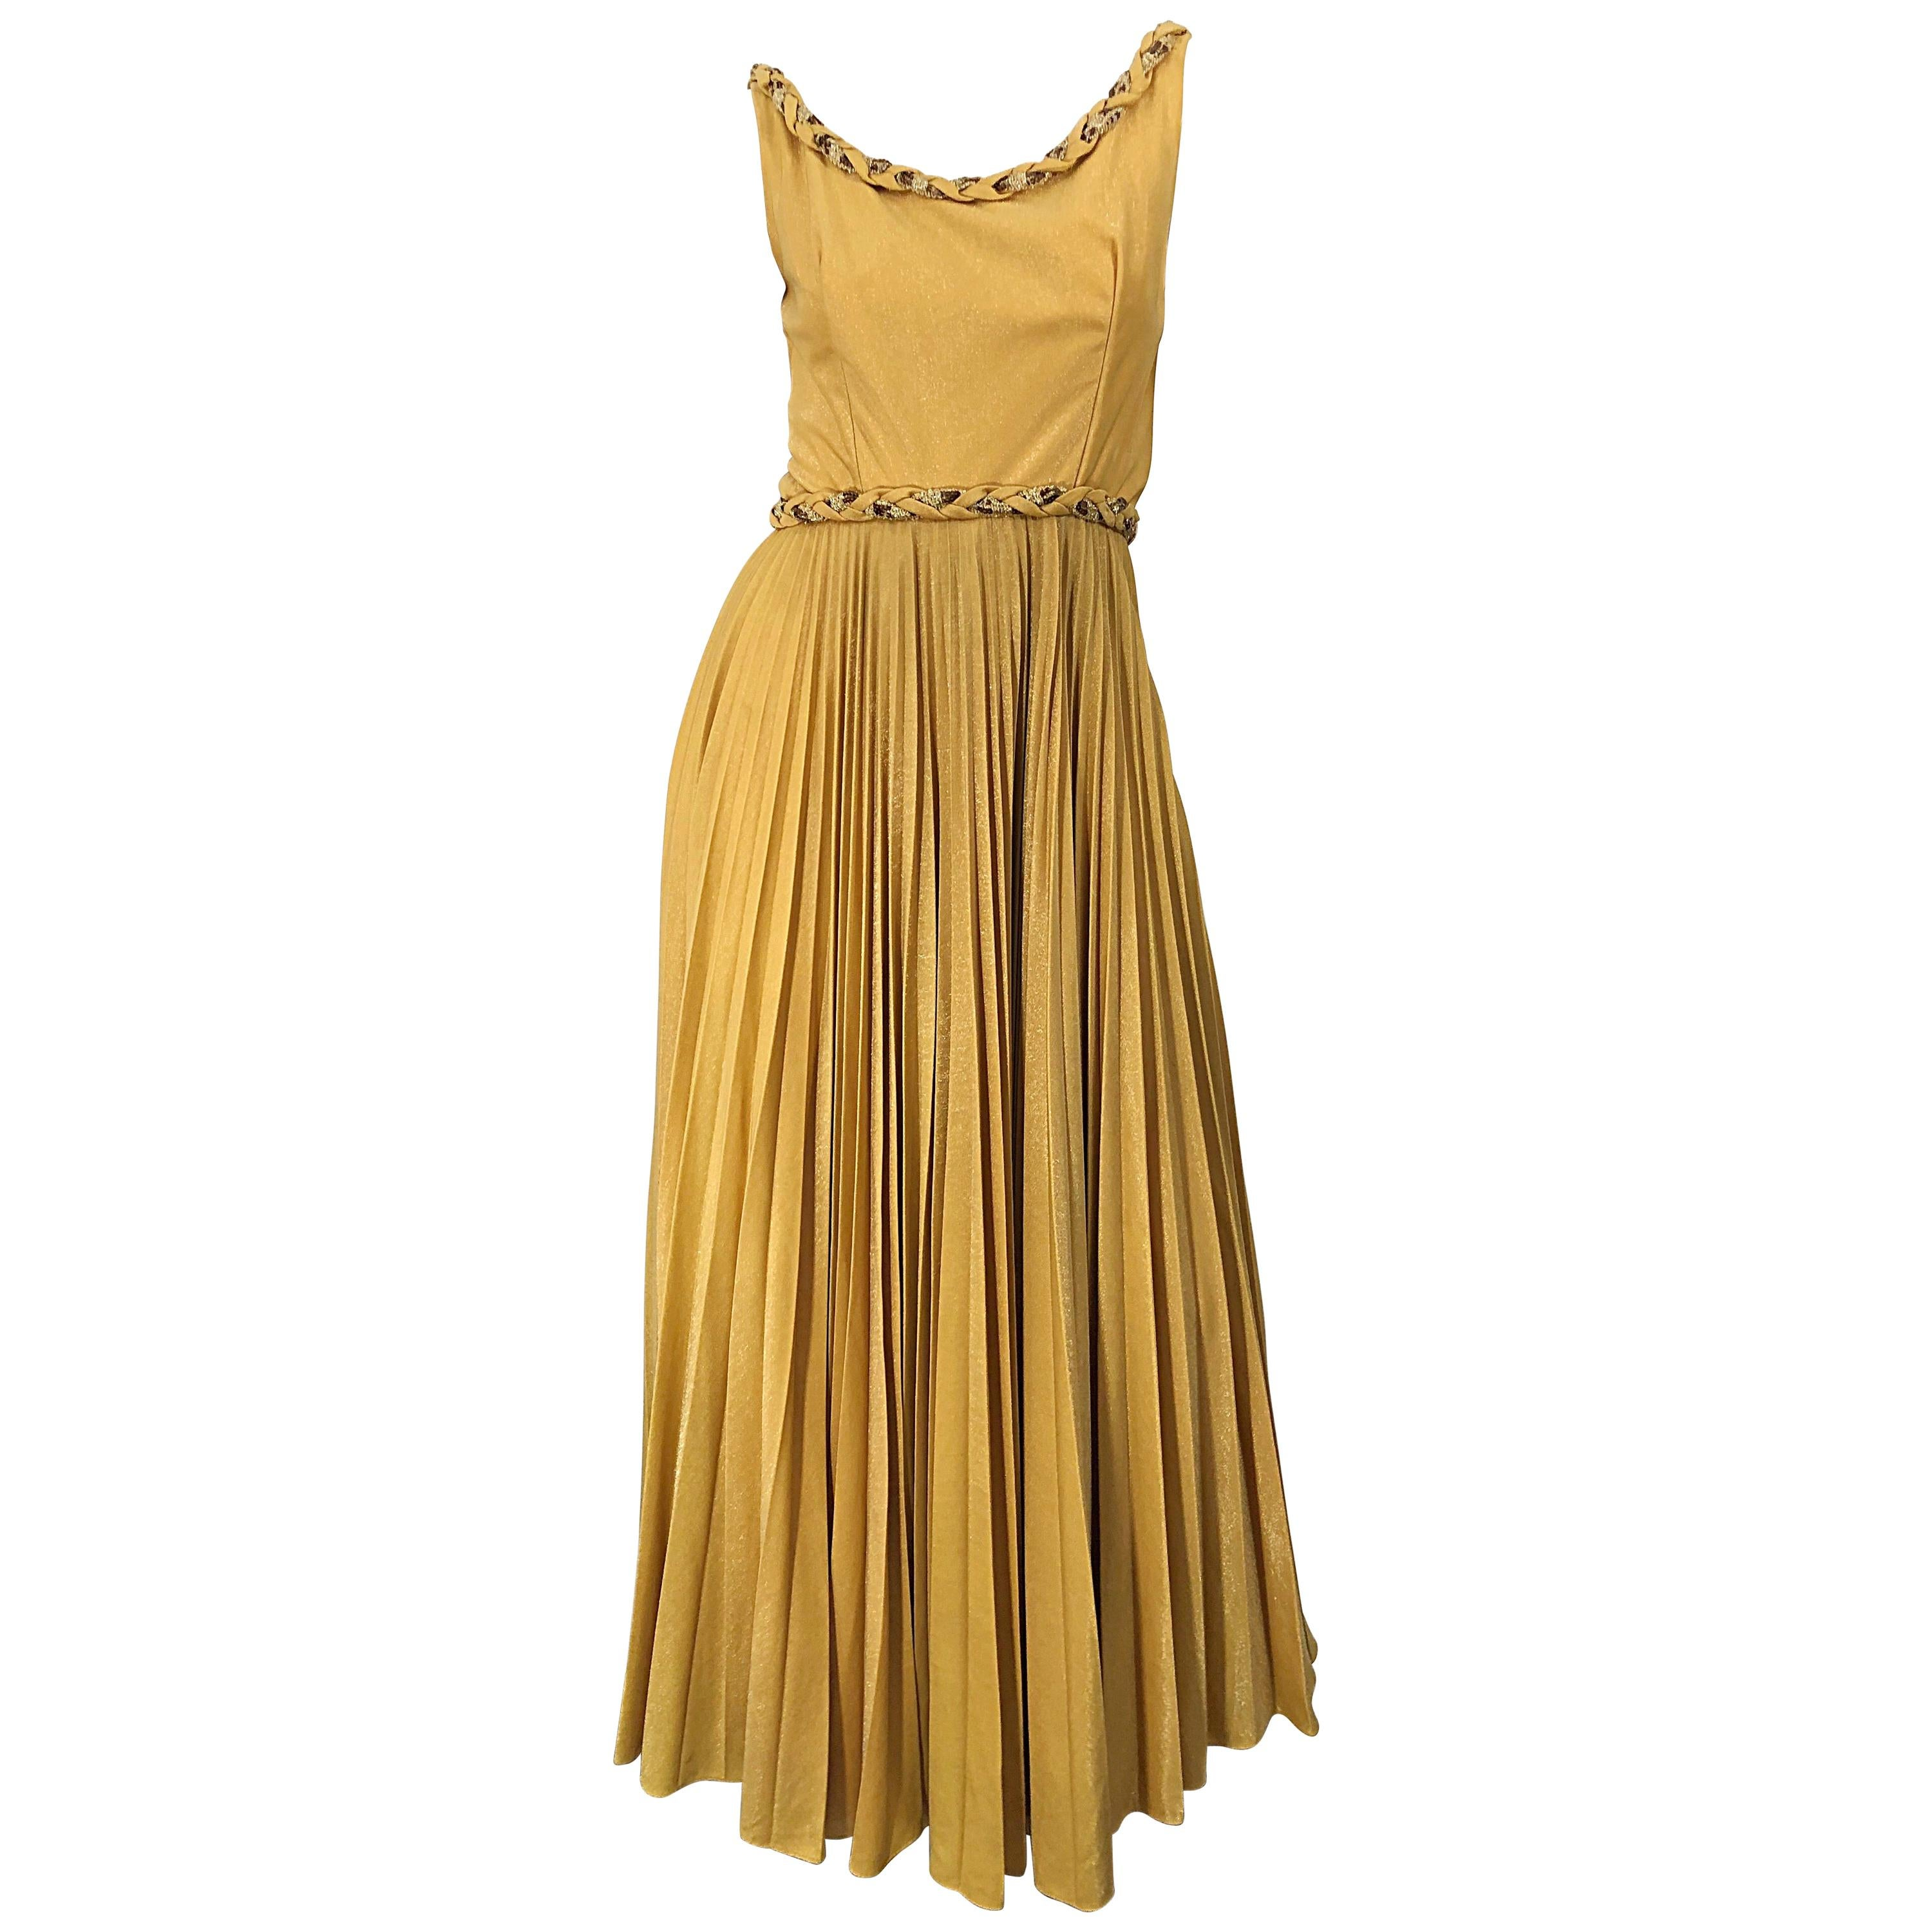 Emma Domb 1950s Gold Metallic Jersey Grecian Style Sequined Vintage 50s Gown